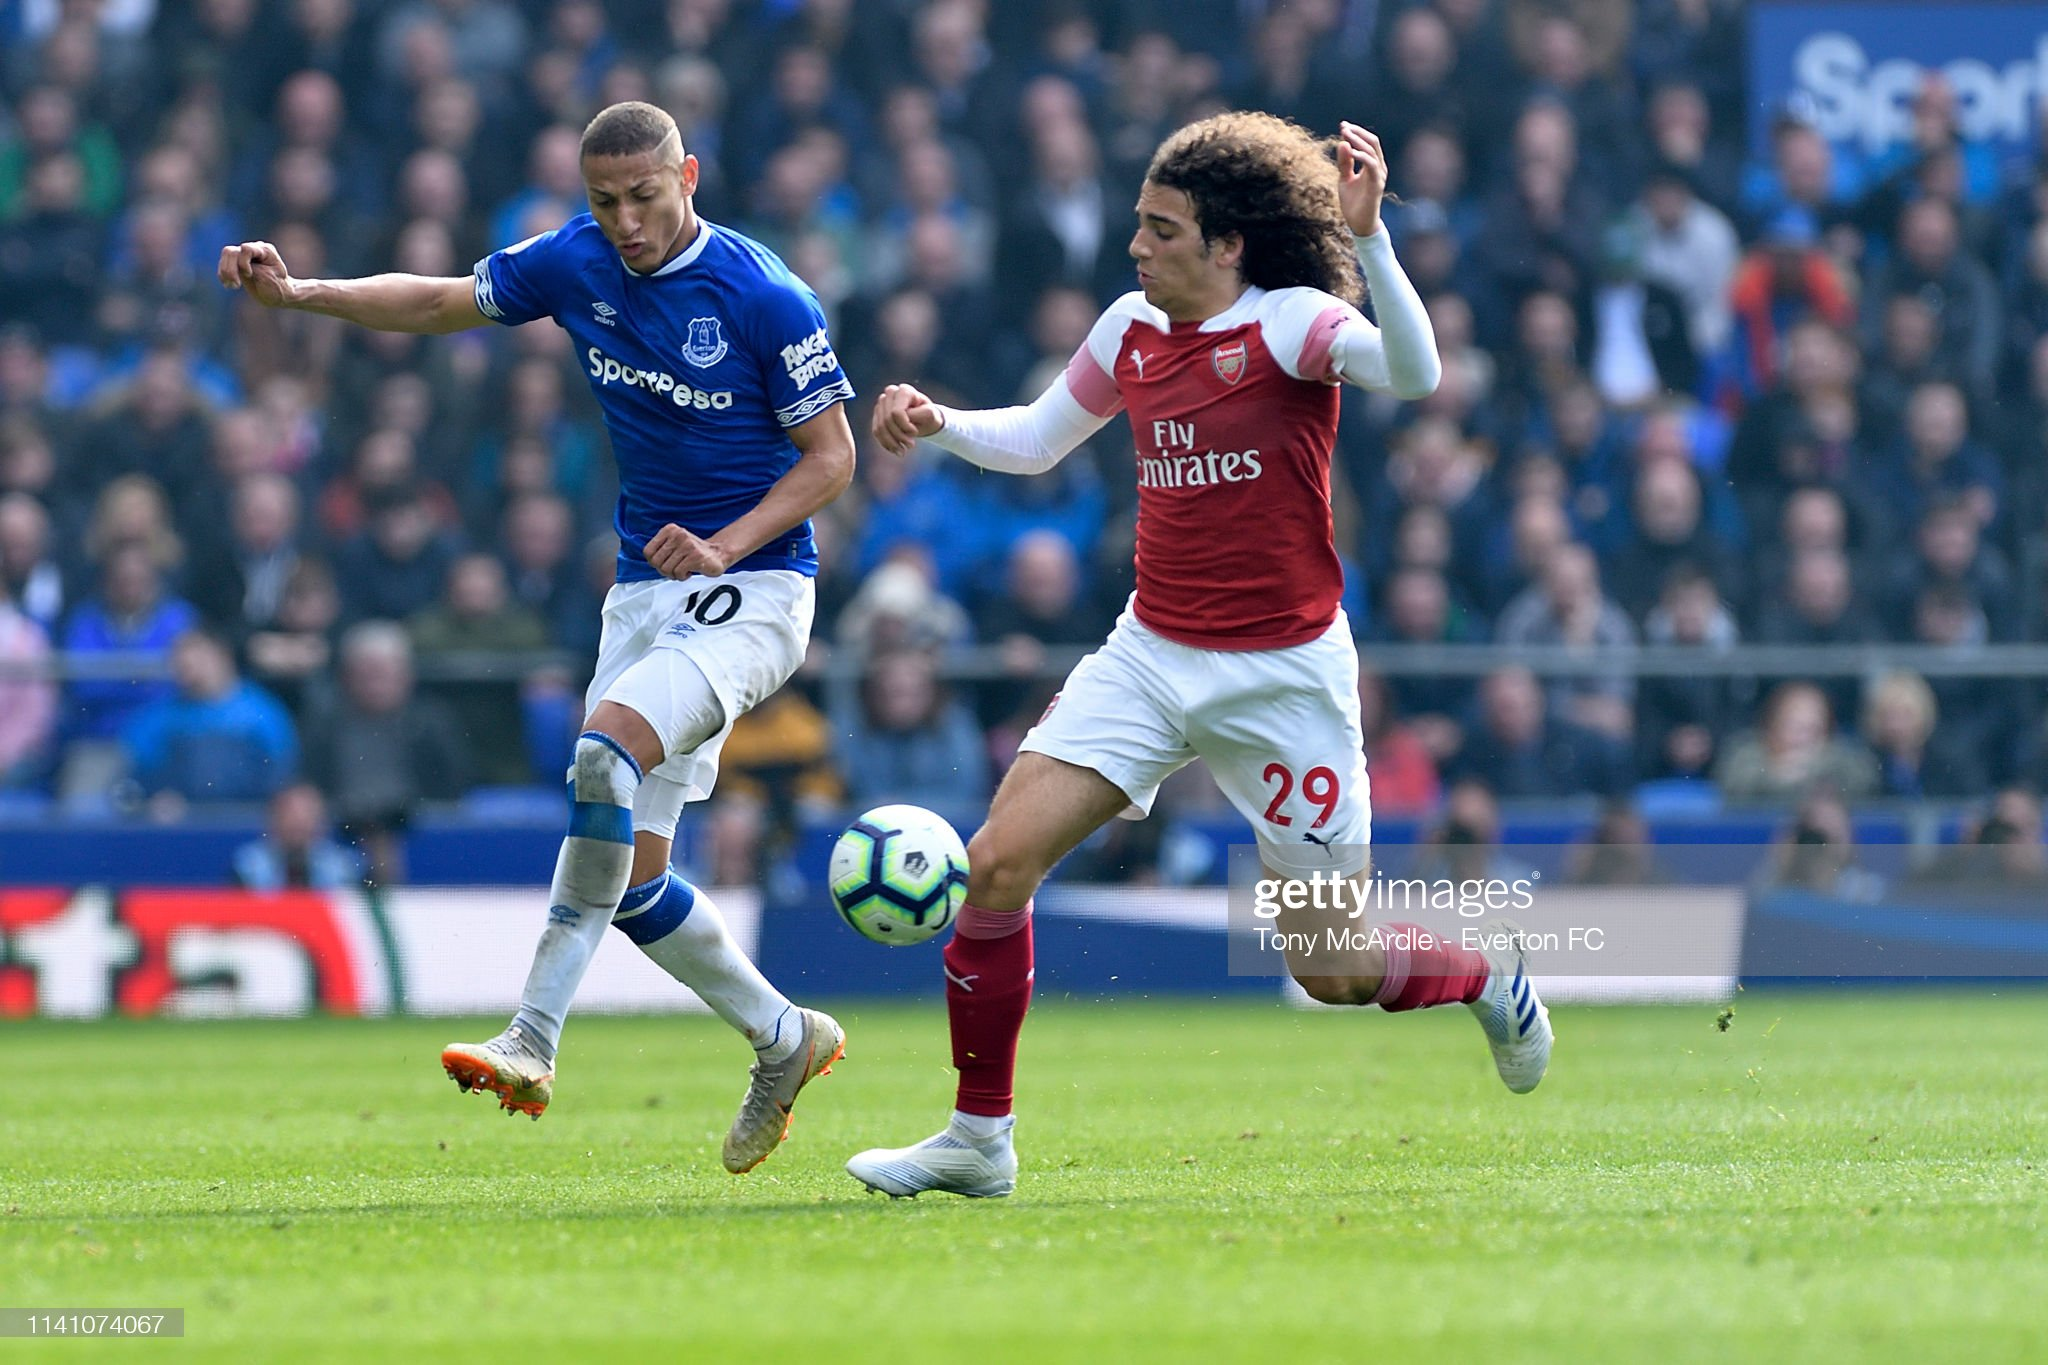 Everton v Arsenal preview, prediction and odds